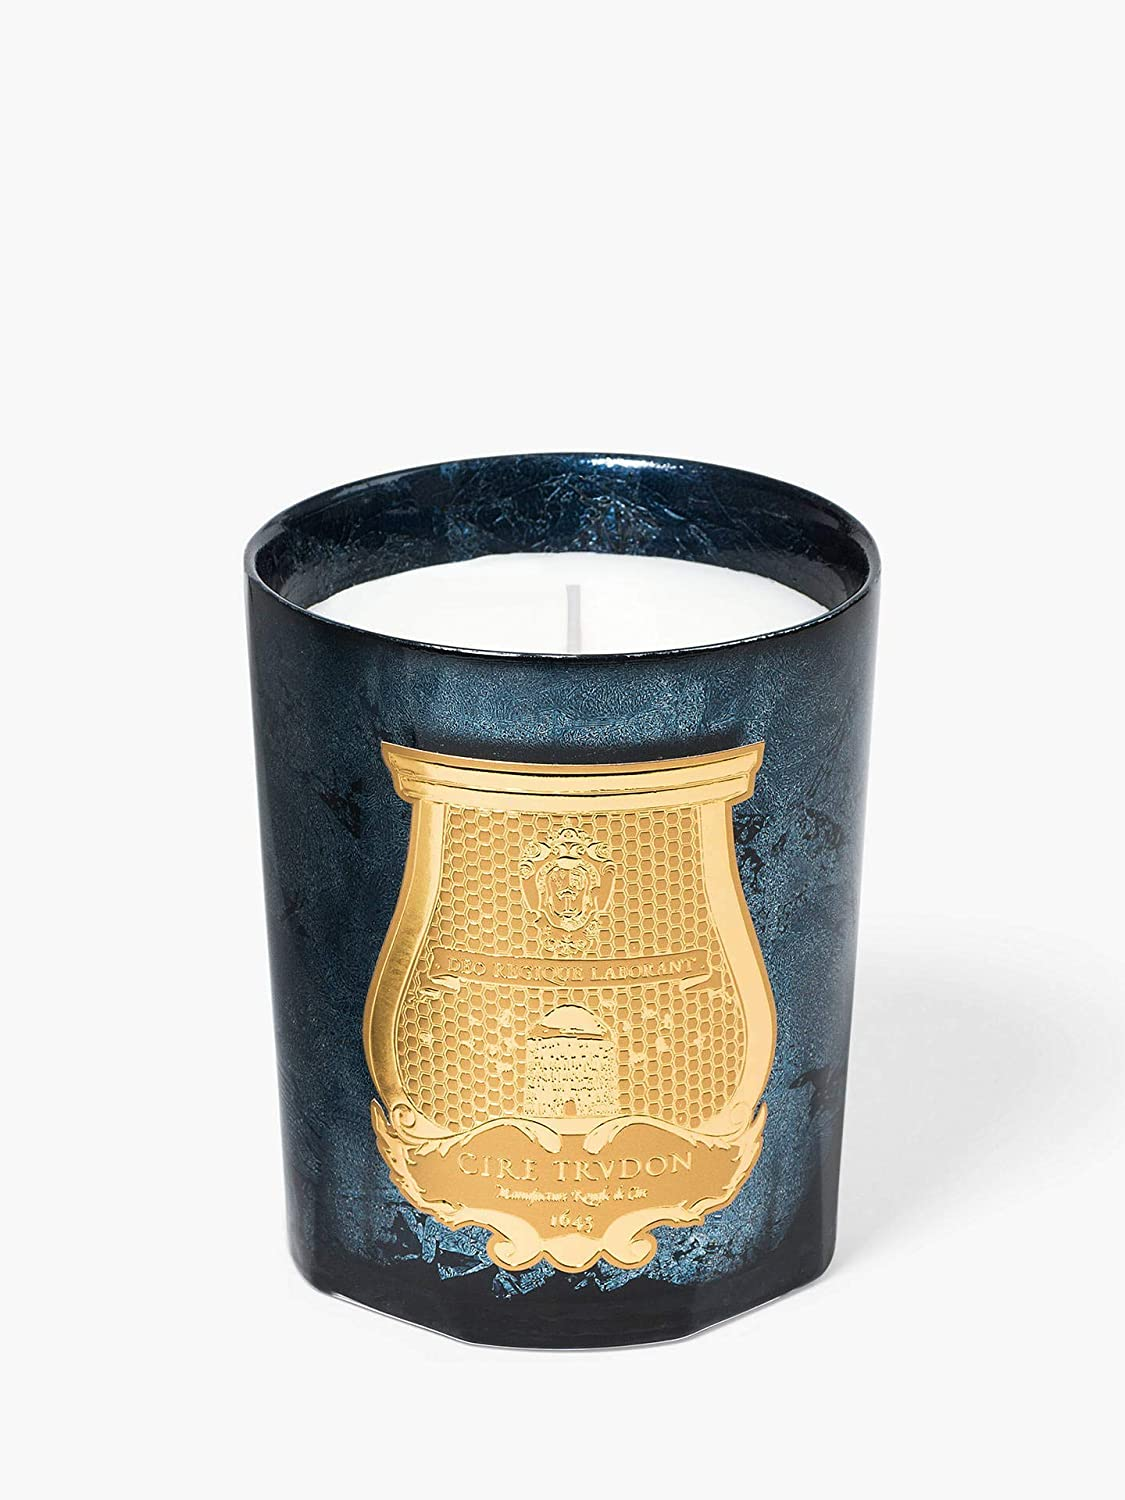 Francophile Gift Ideas Cire Trudon Fir Candle